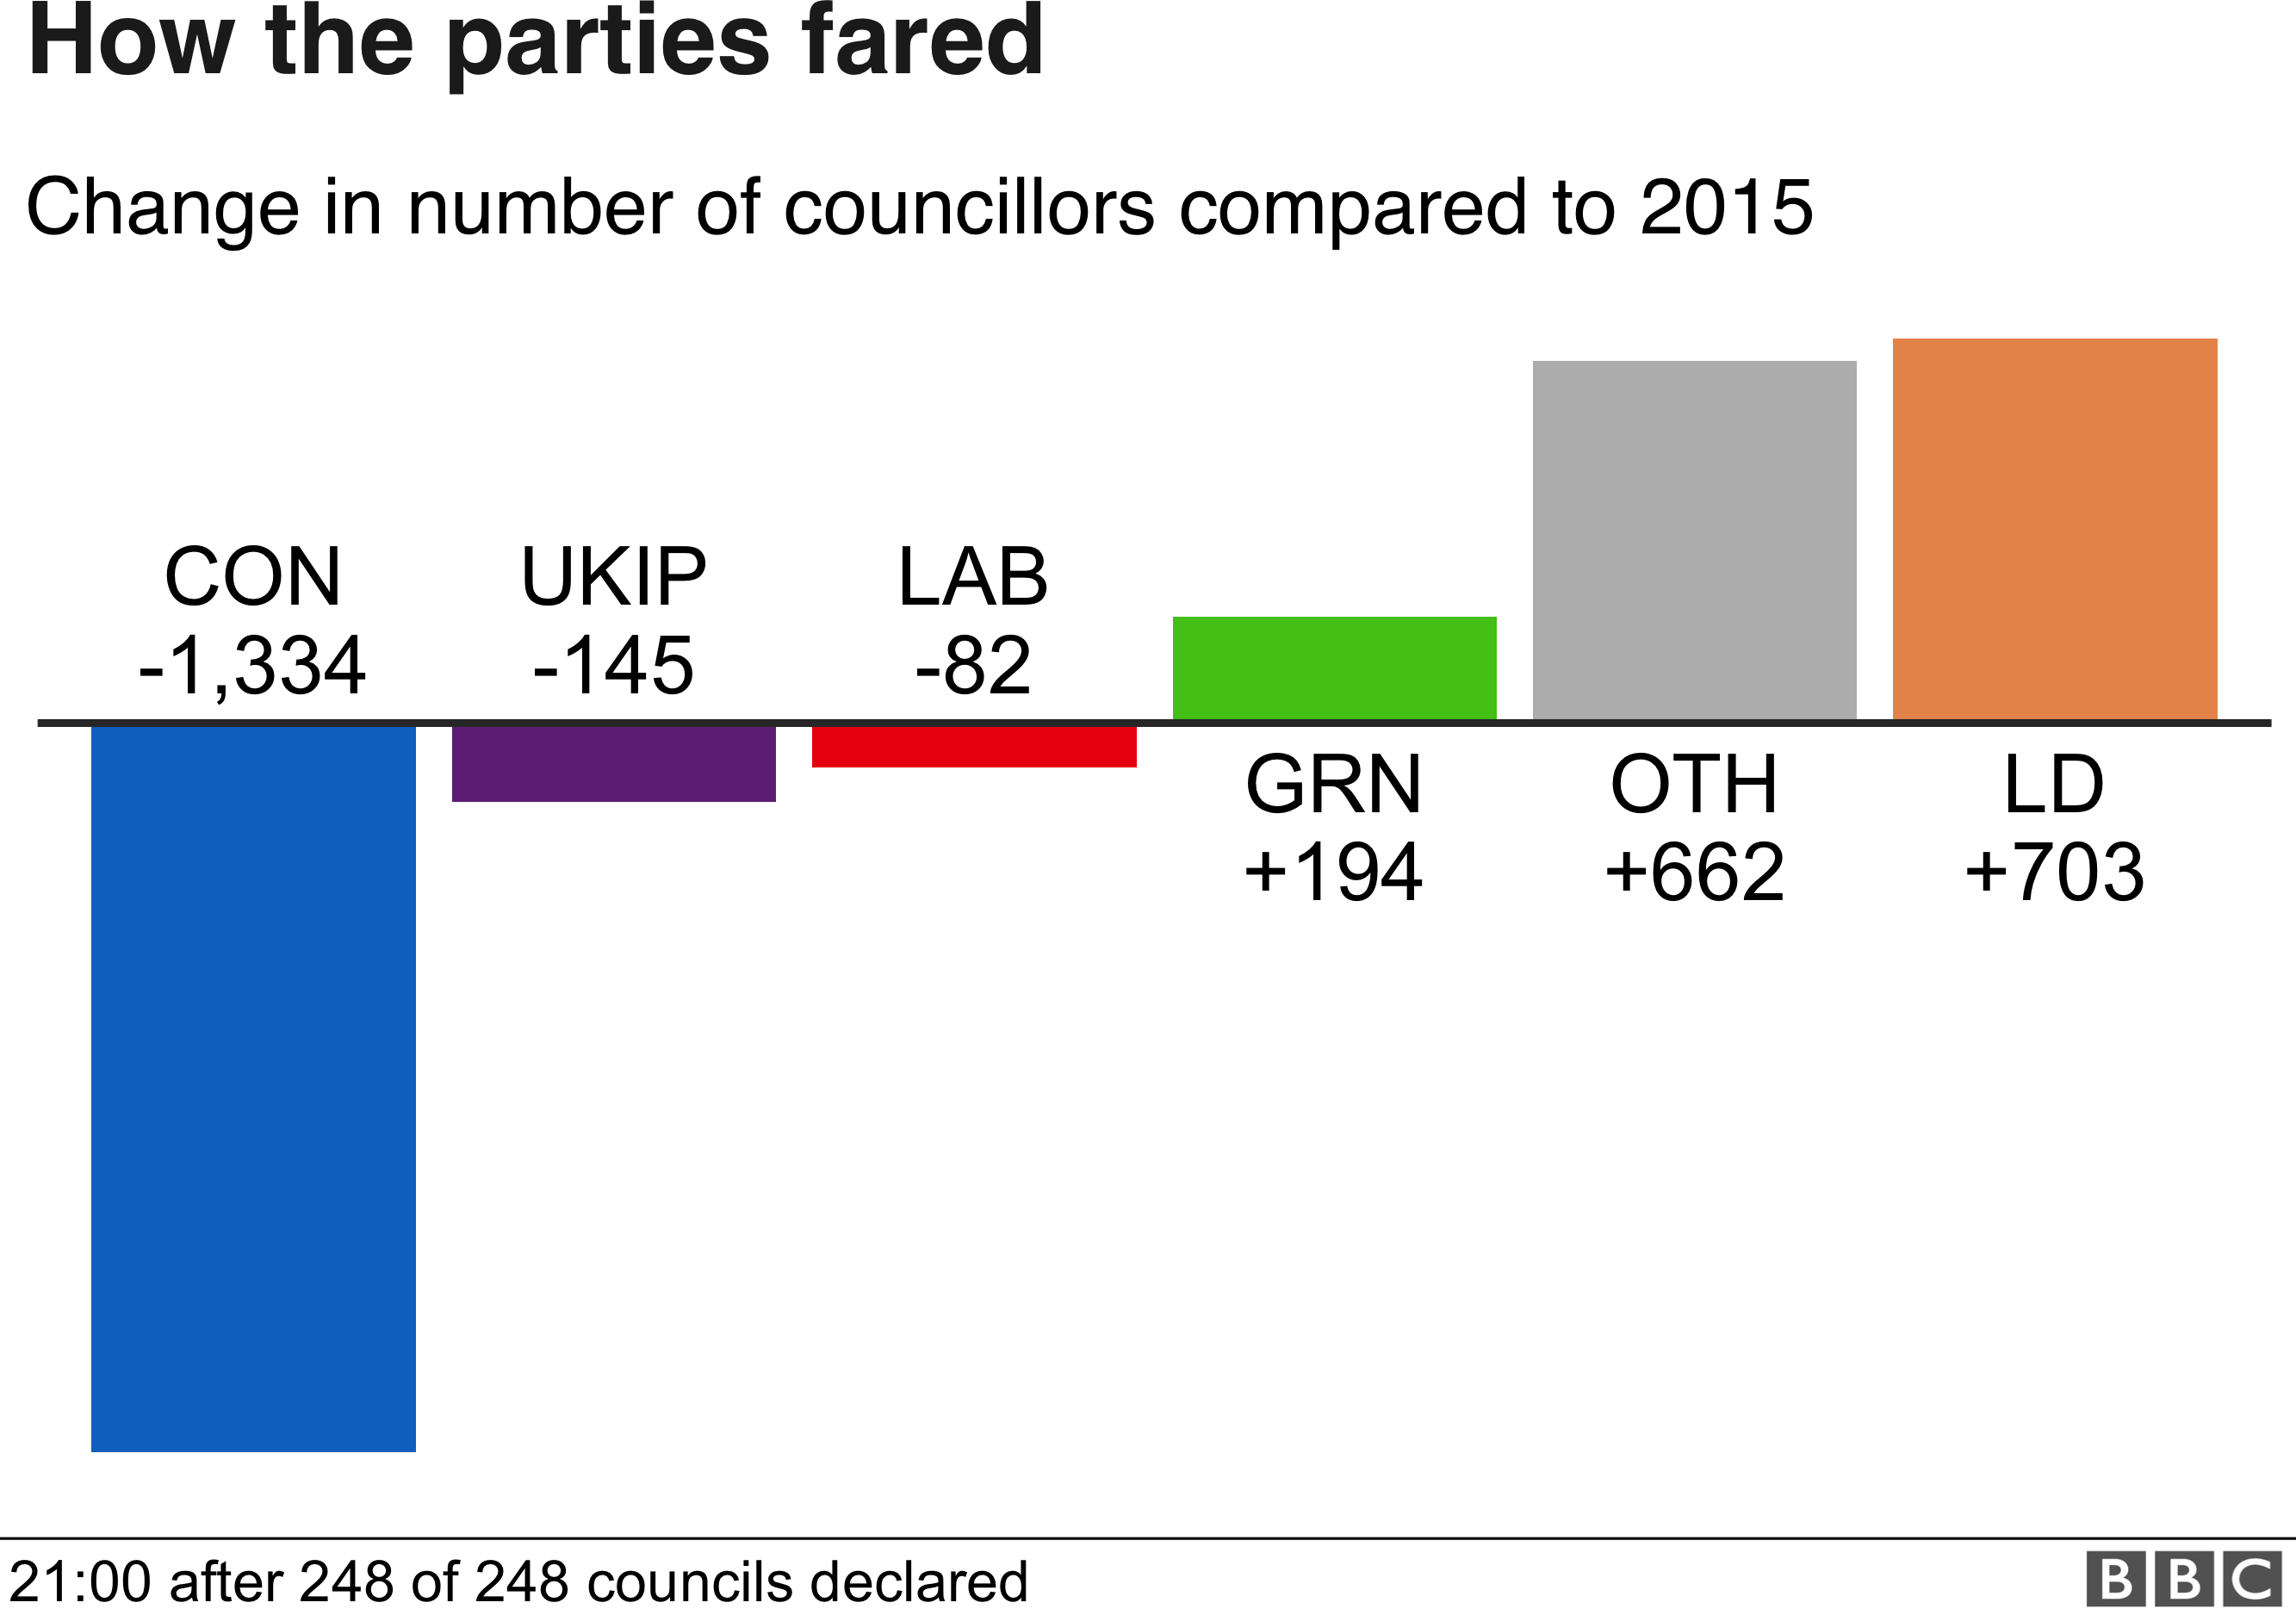 Tories suffered 1,300 losses and Lib Dems gained over 700 seats.